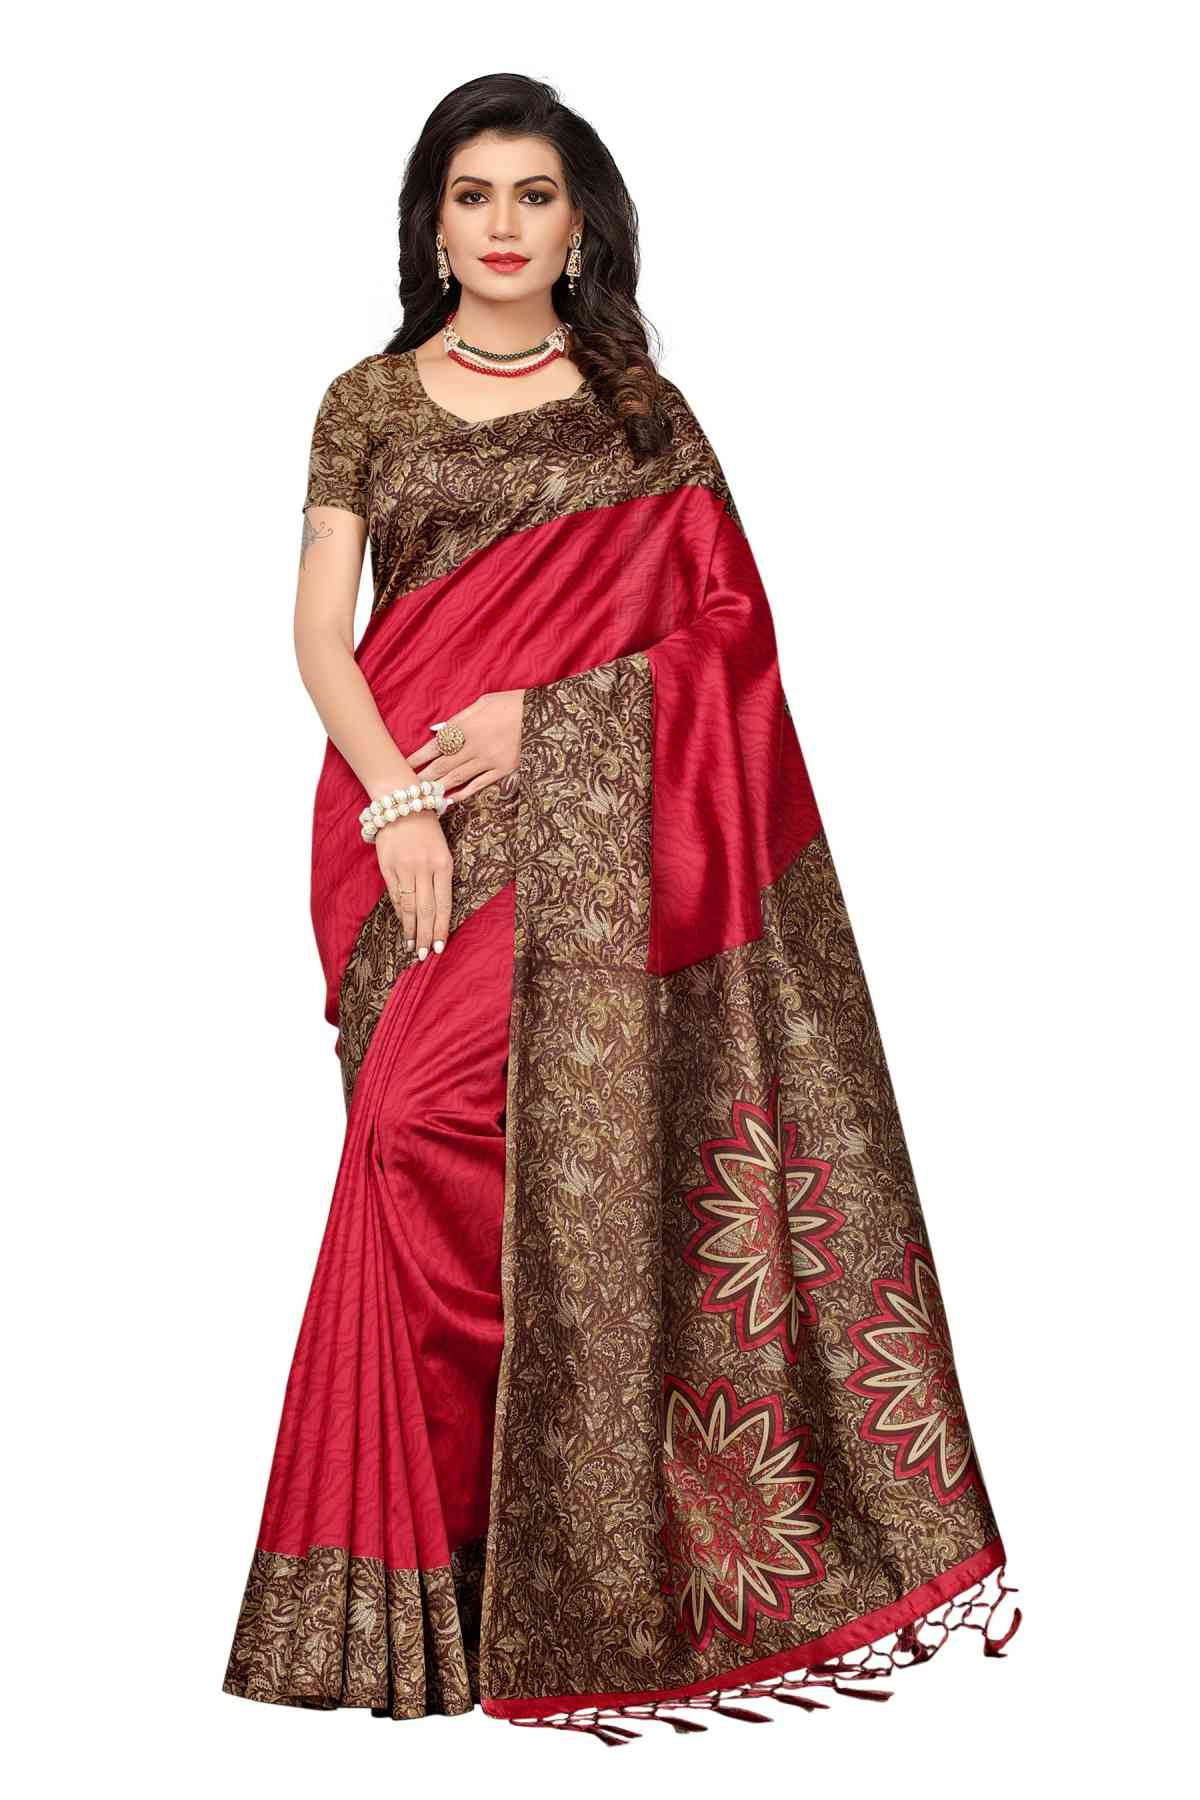 MF Designer Red n maroon Kashmiri Silk saree